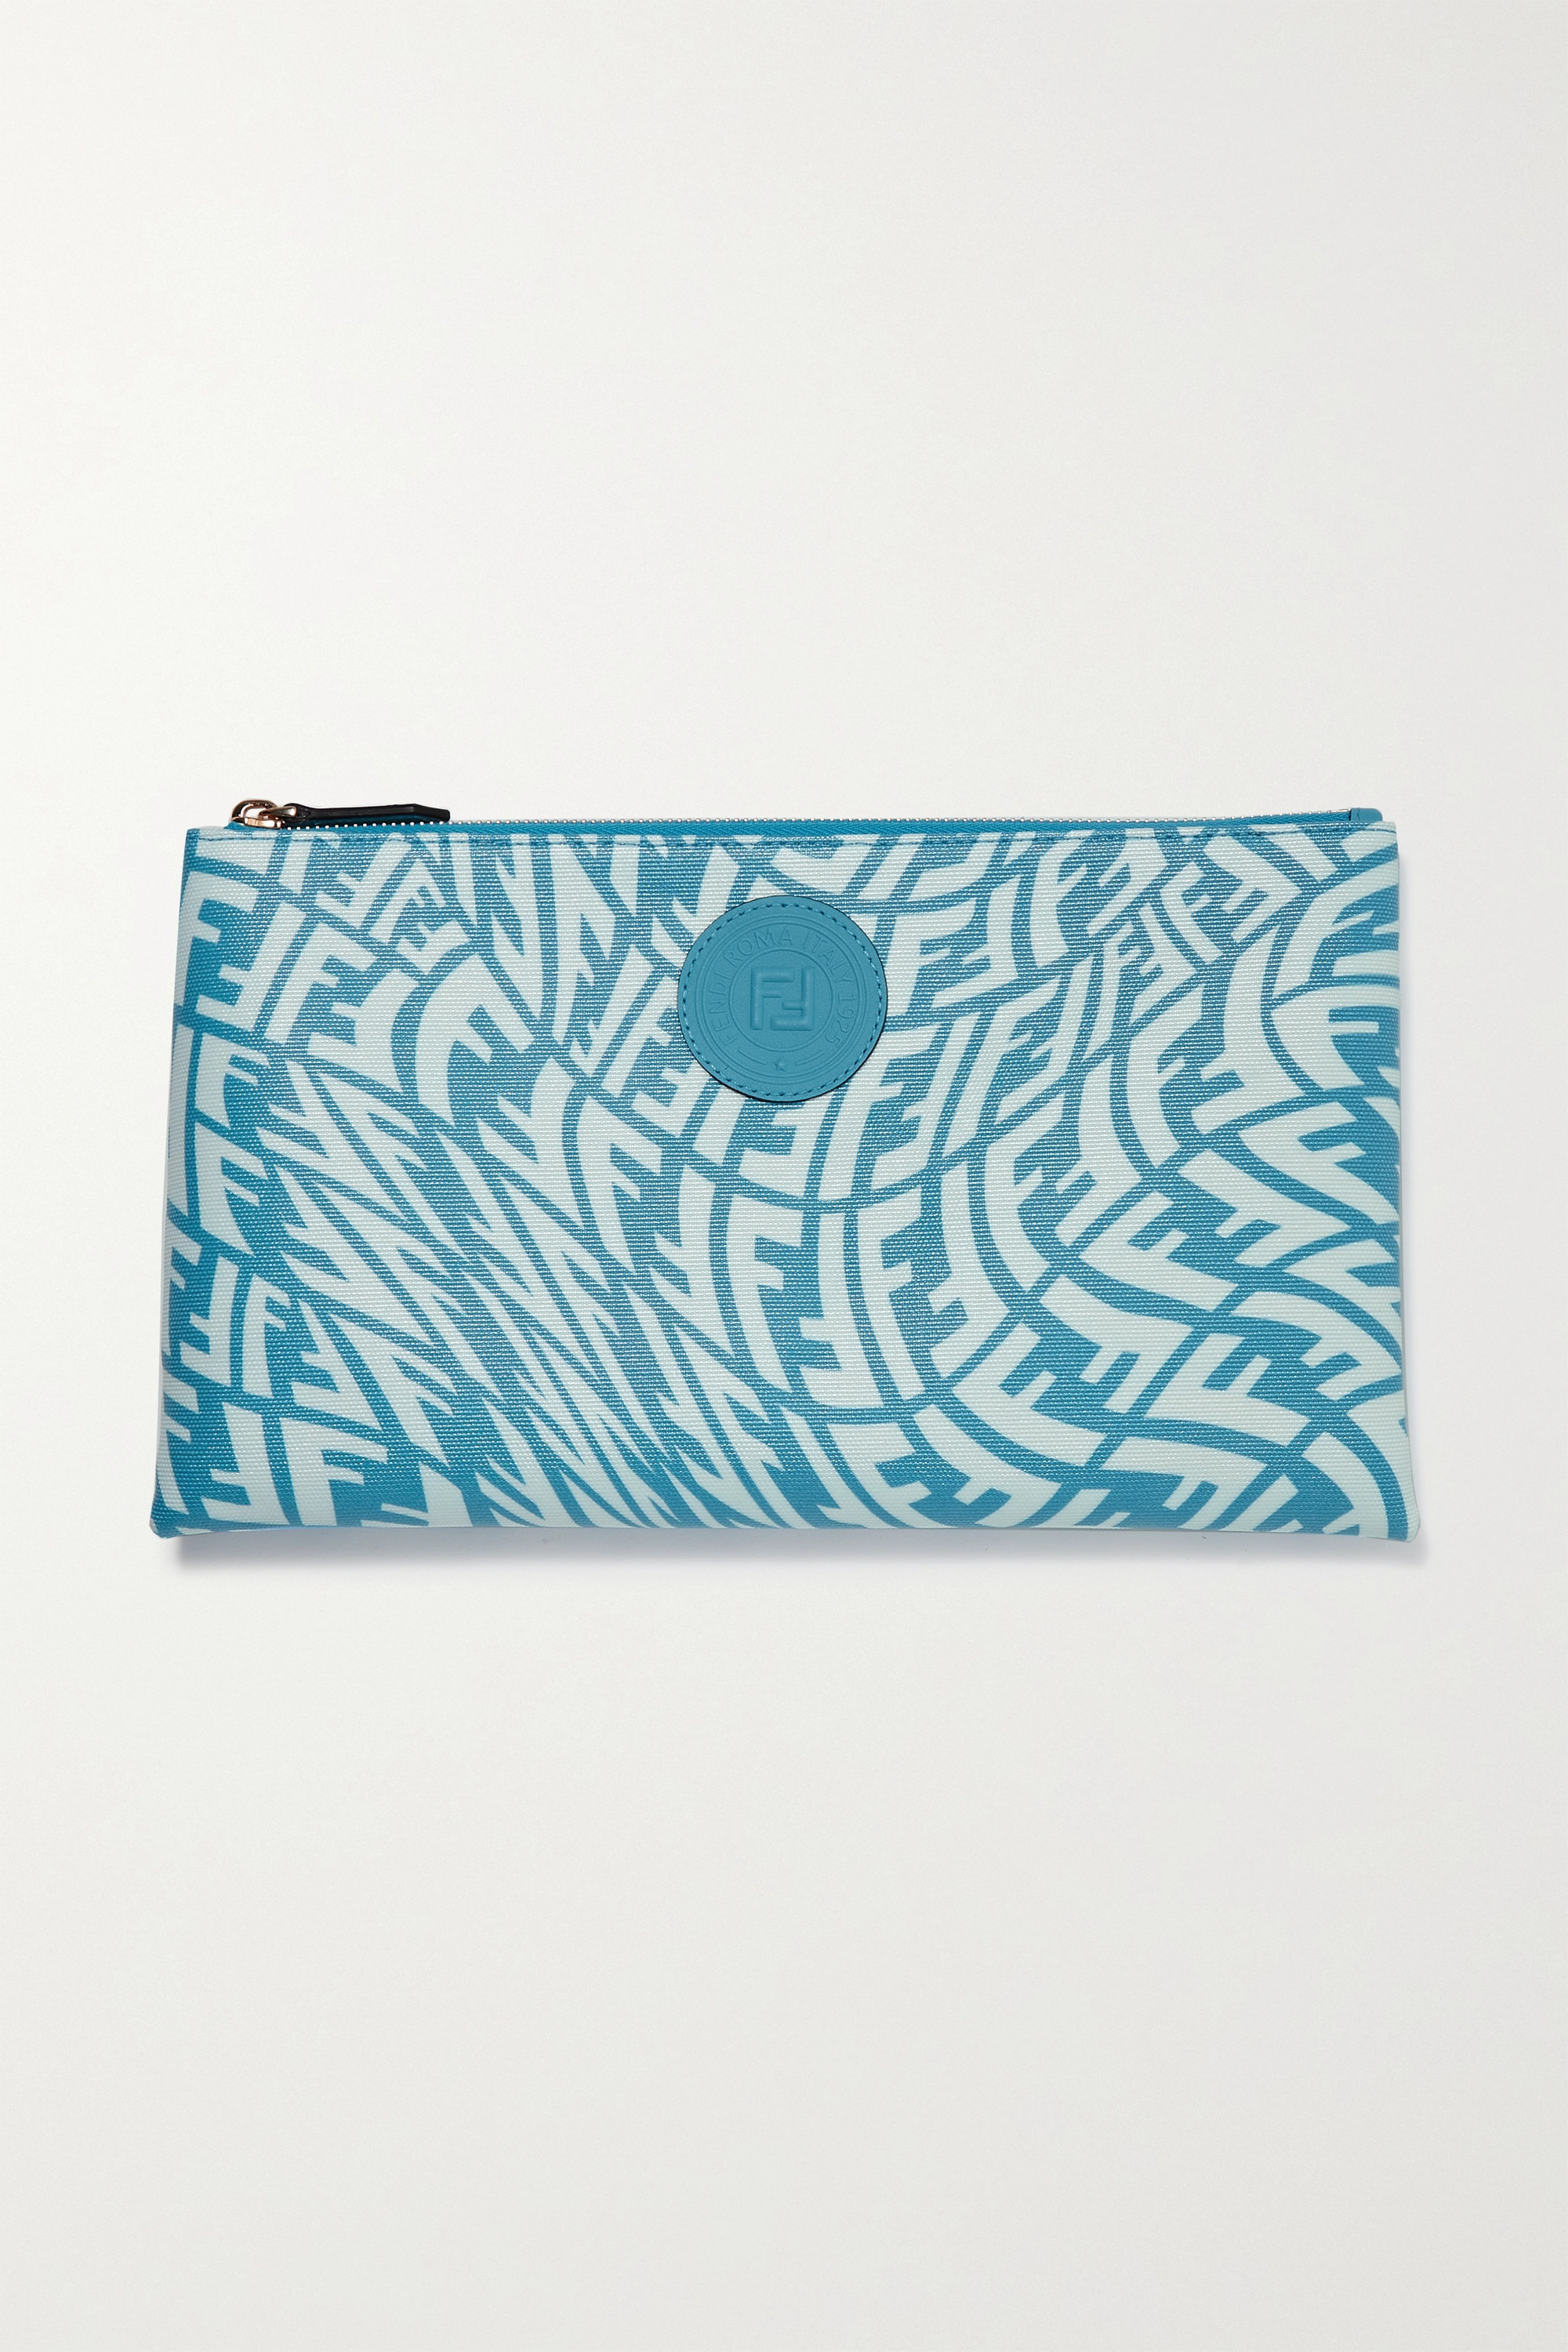 Fendi Leather-trimmed printed coated-canvas pouch